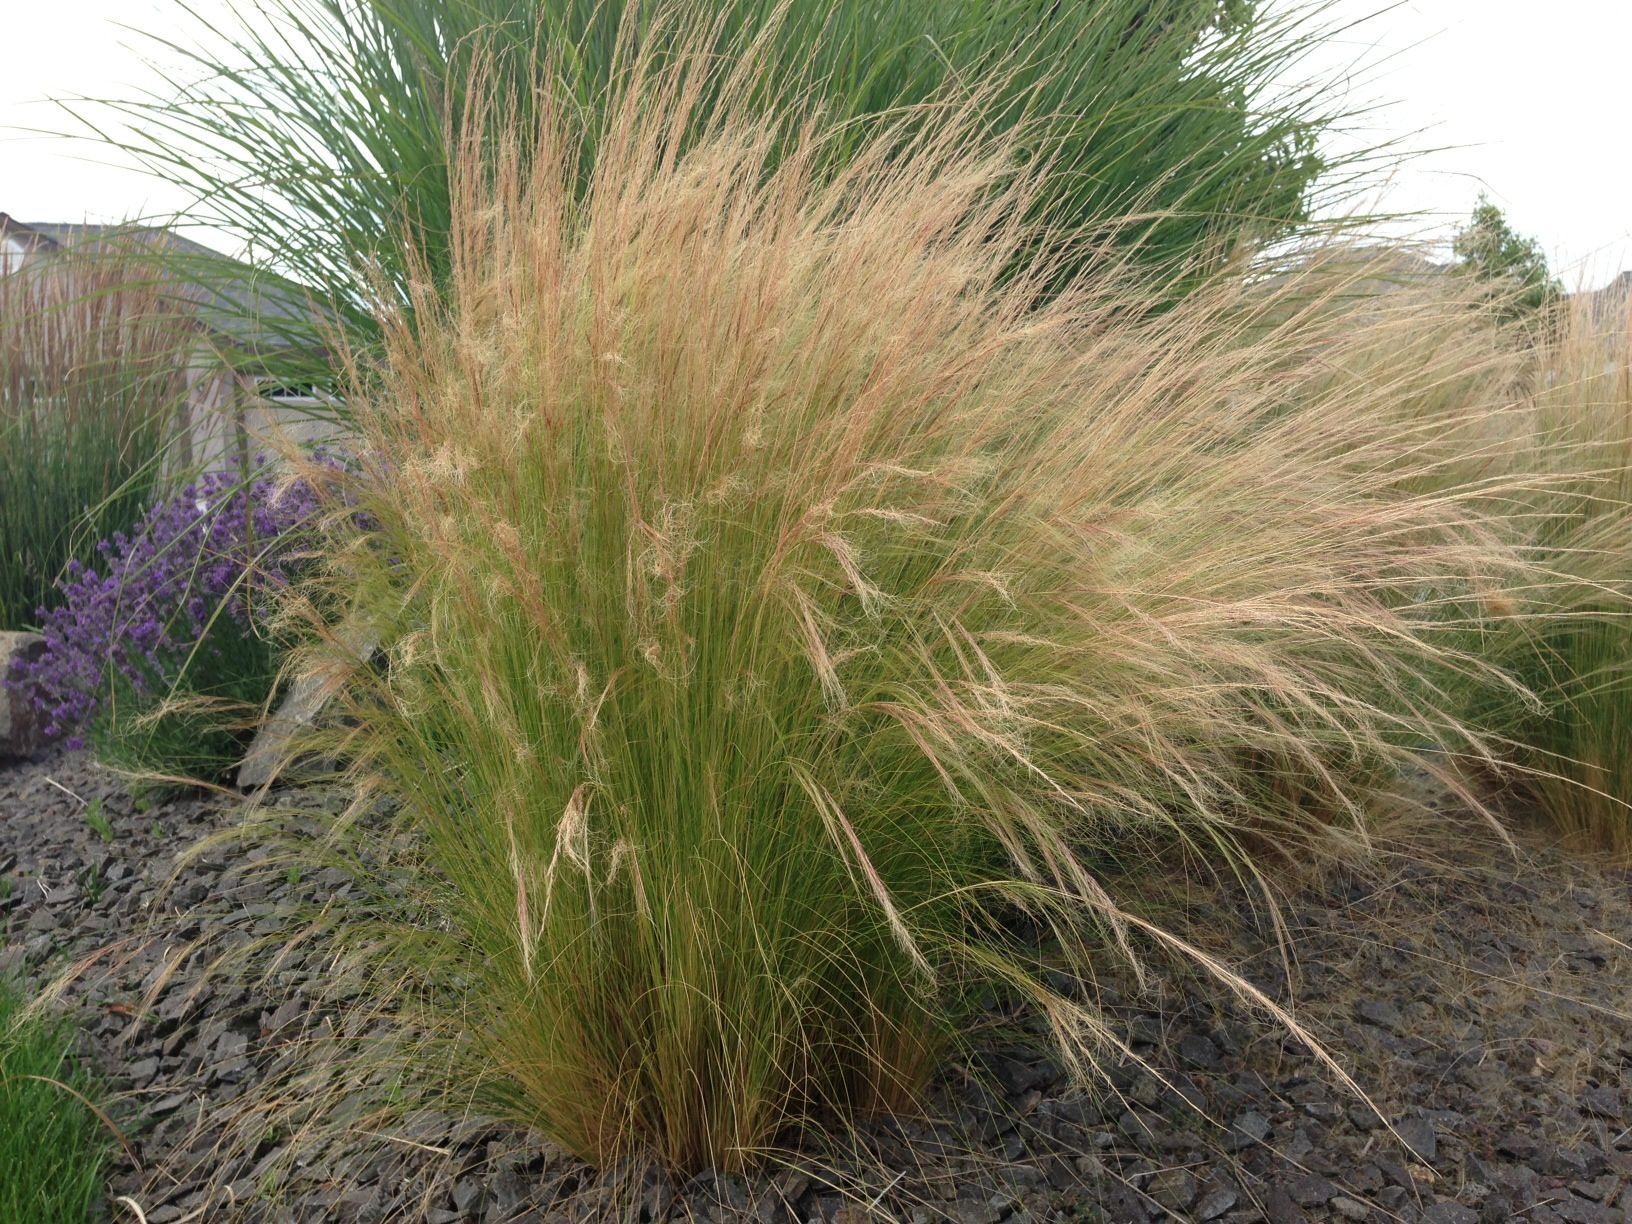 Ornamental Grasses Update Your Curb Appeal With Just One Plant The Garden Glove Ornamental Grasses Drought Tolerant Garden Grass